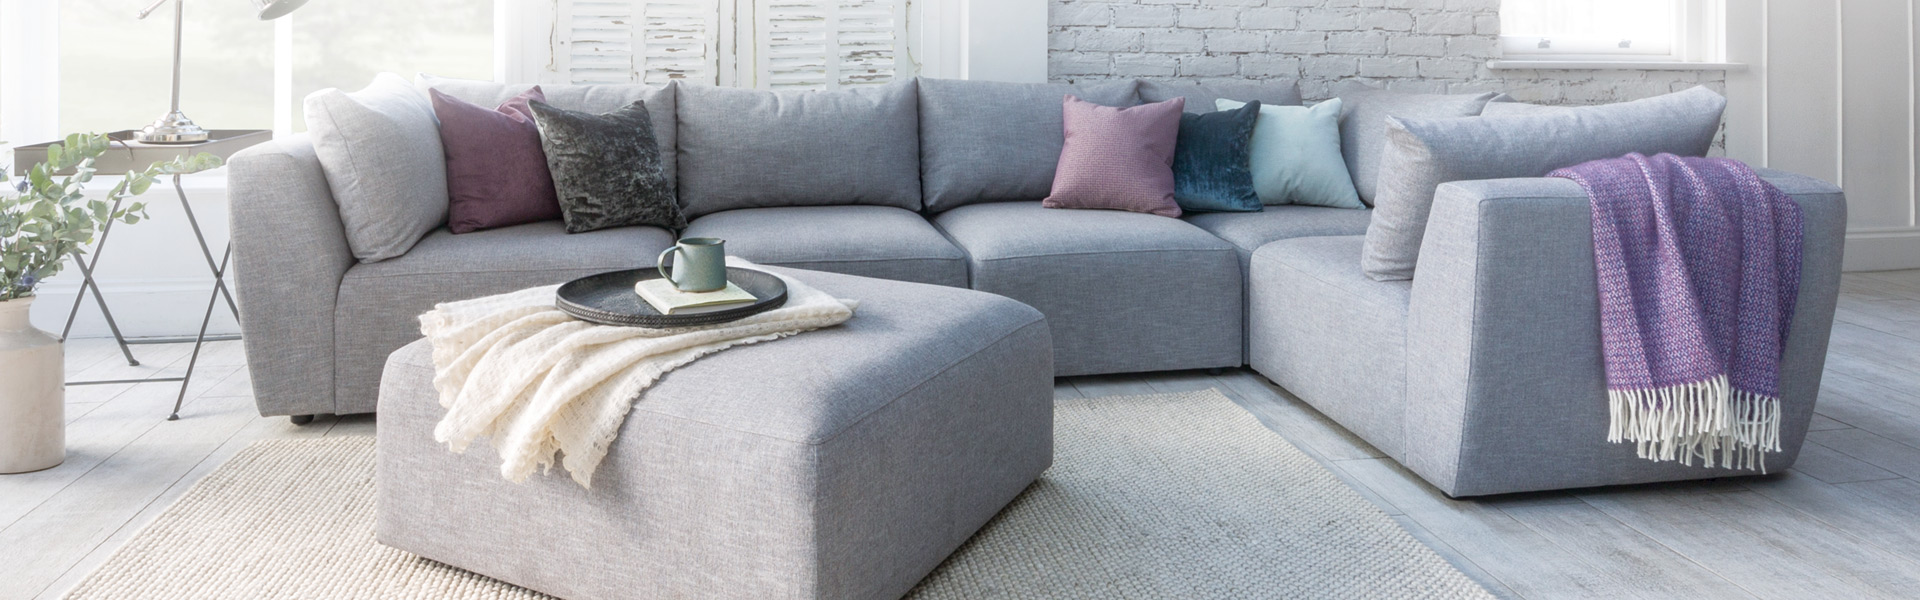 The Lounge Co. Lottie Sofa